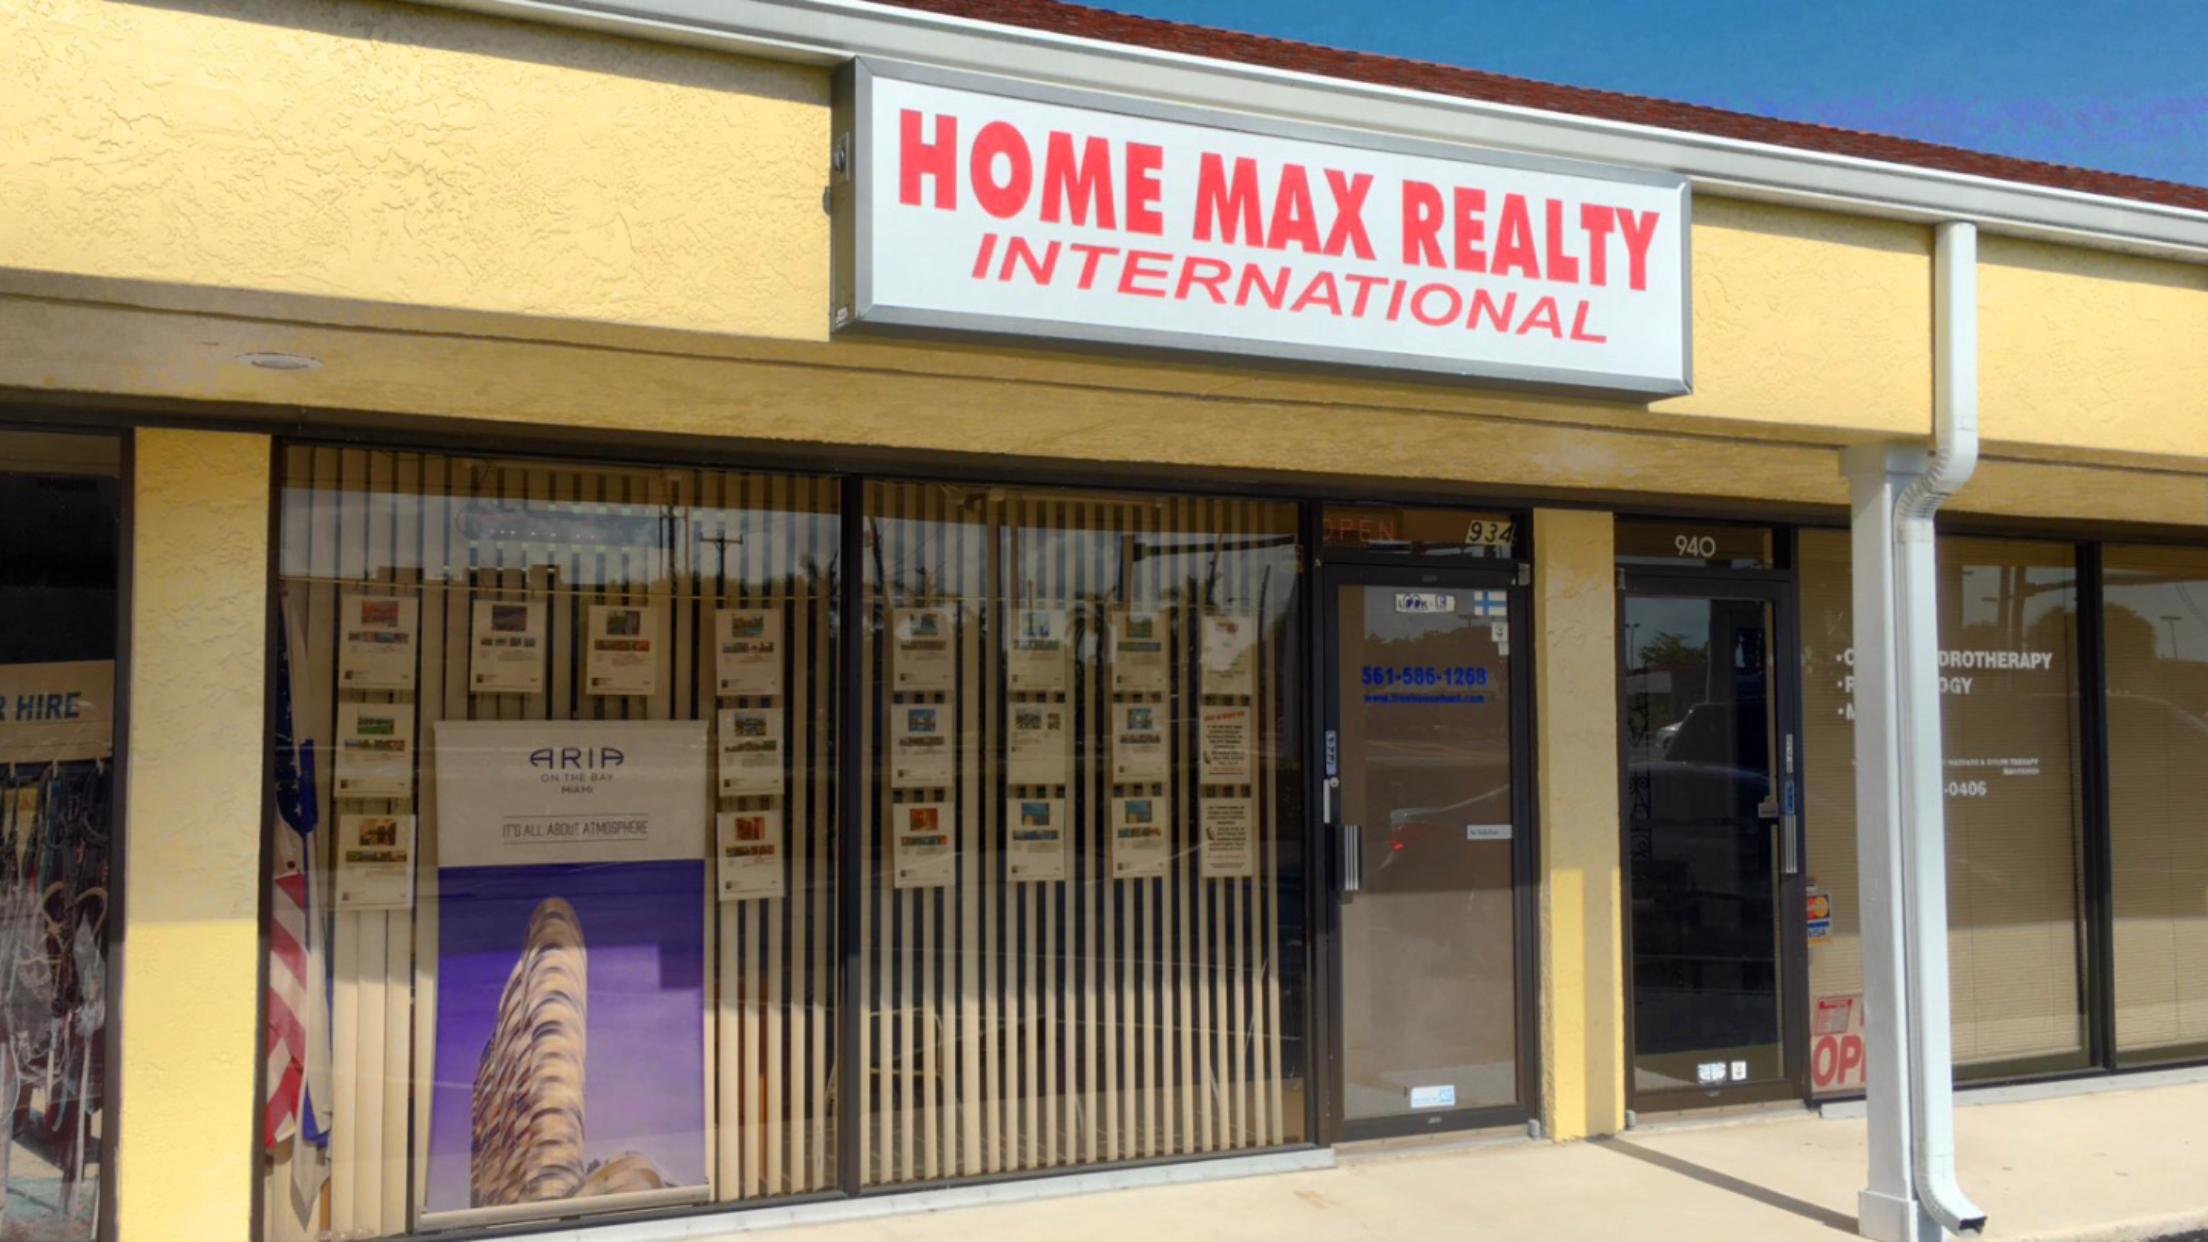 Home Max Realty International